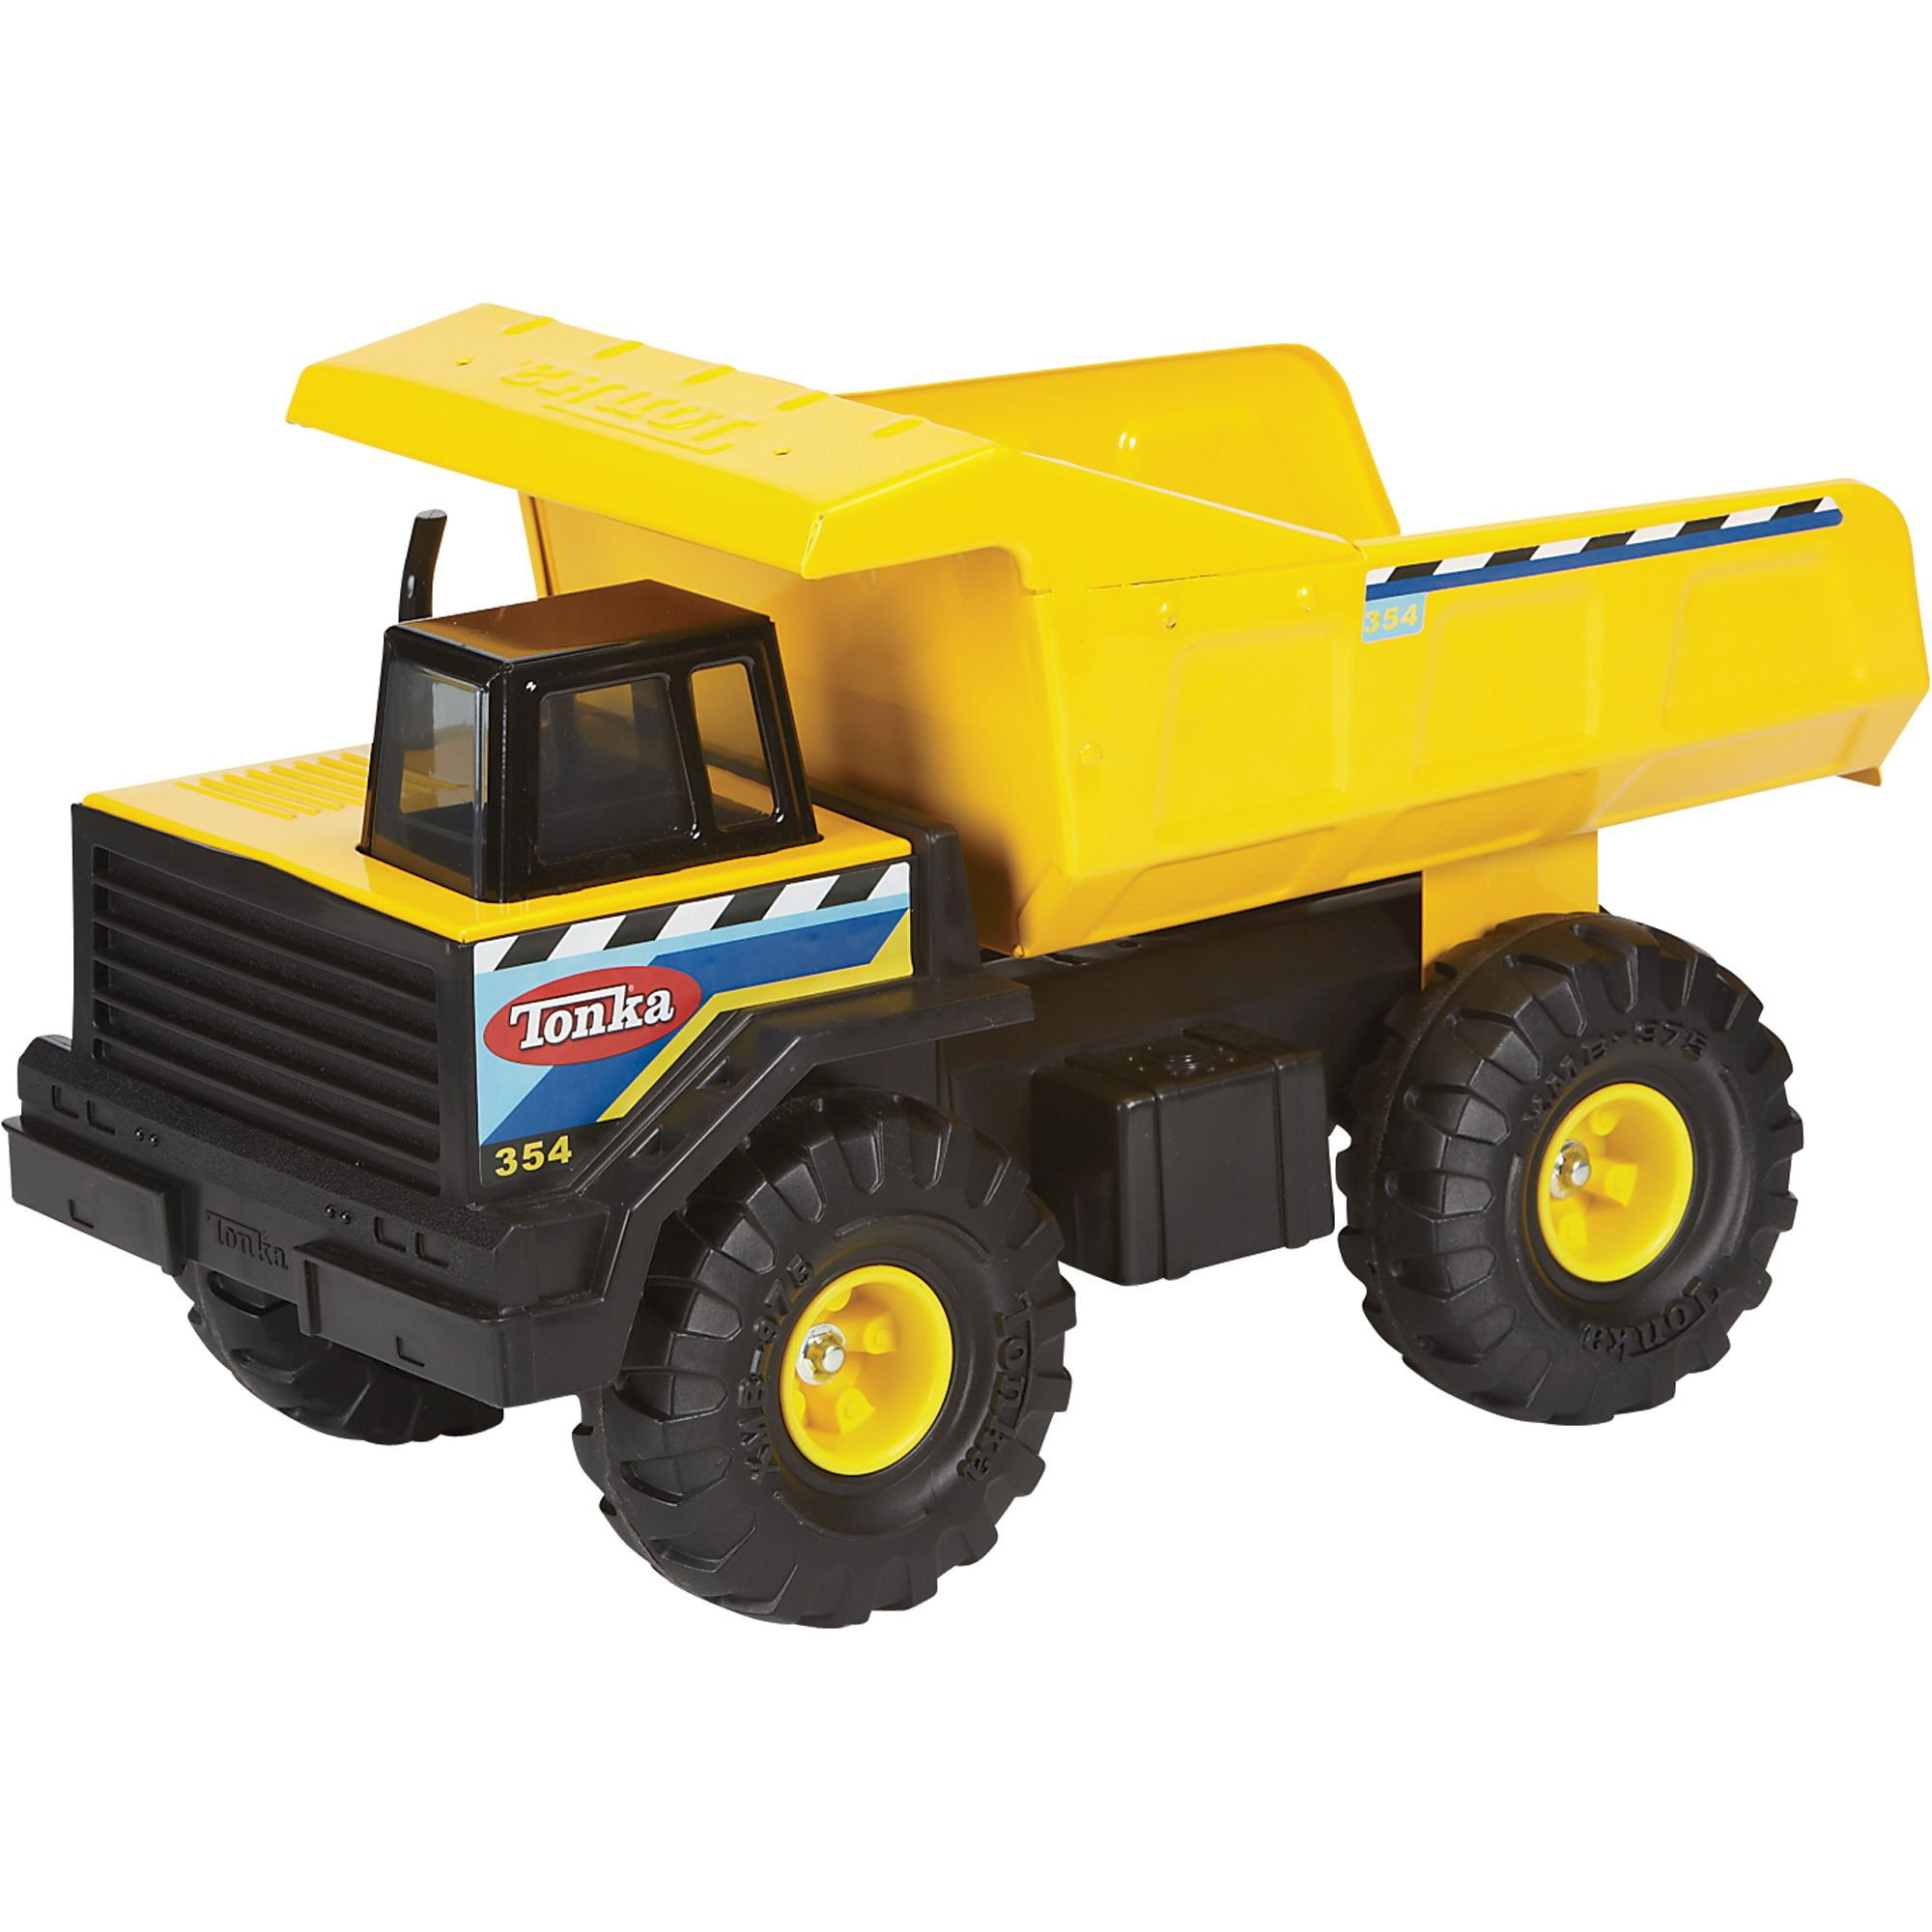 I Enjoyed Watching My Son Play With This Truck When He Was Just A Toddler Indestructible Do They Even Make Toys Sy Any More